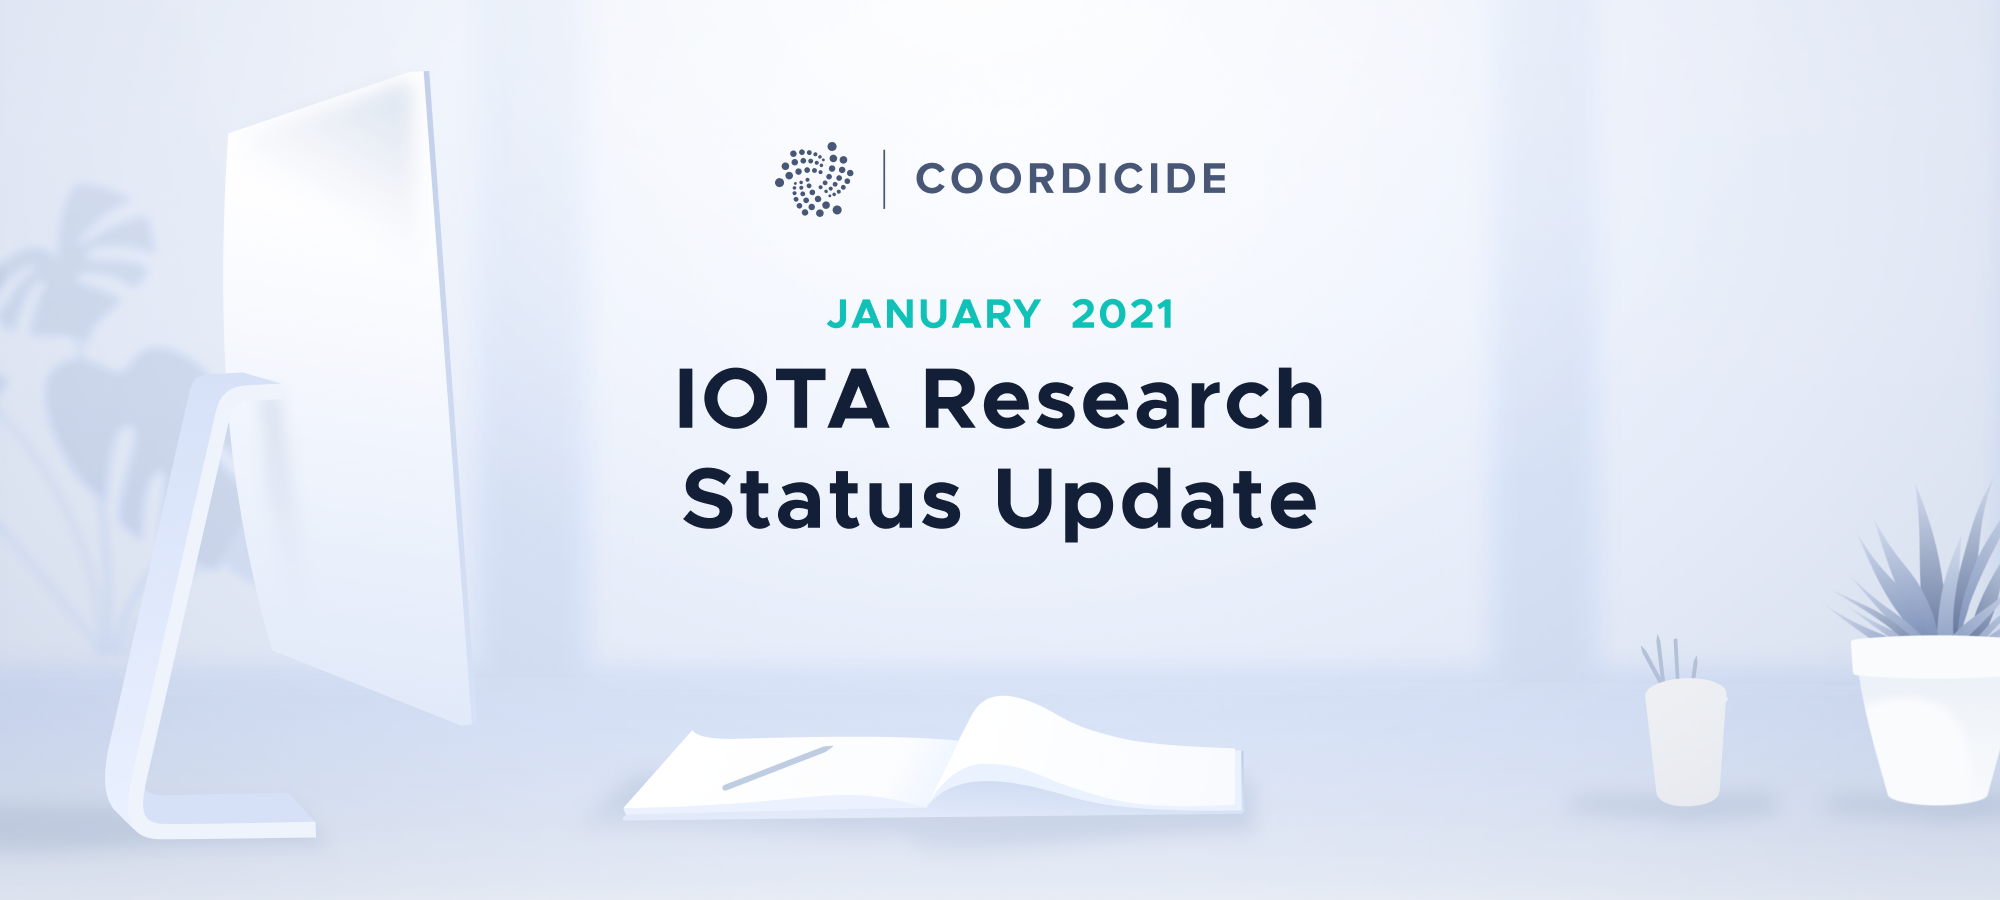 IOTA Research Status Update January 2021